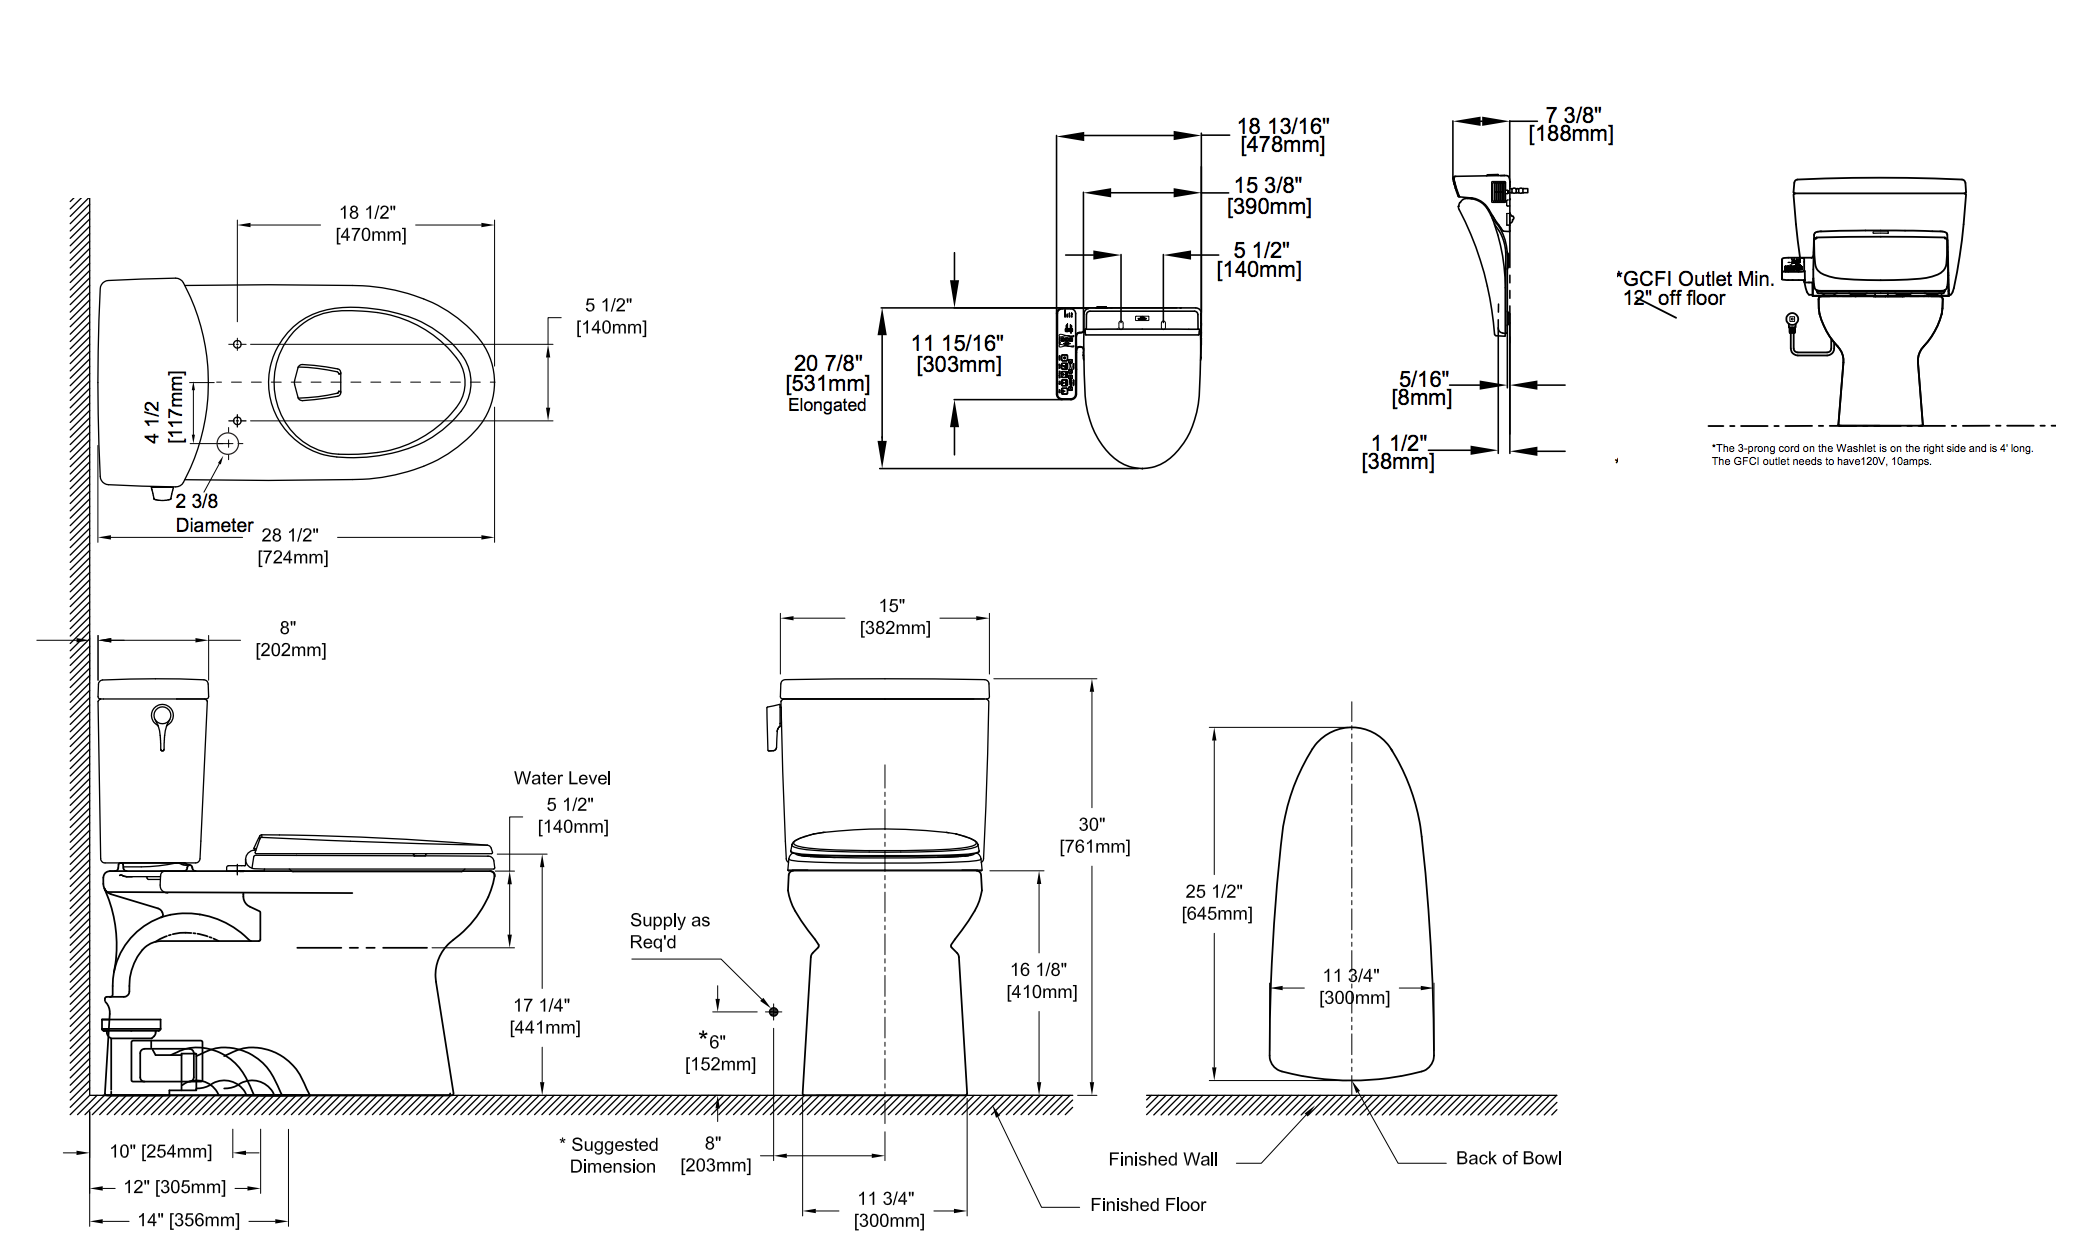 toto-vespin-ii-1g-washlet-c100-two-piece-toilet-and-bidet-system-1.0-gpf-diagram.png